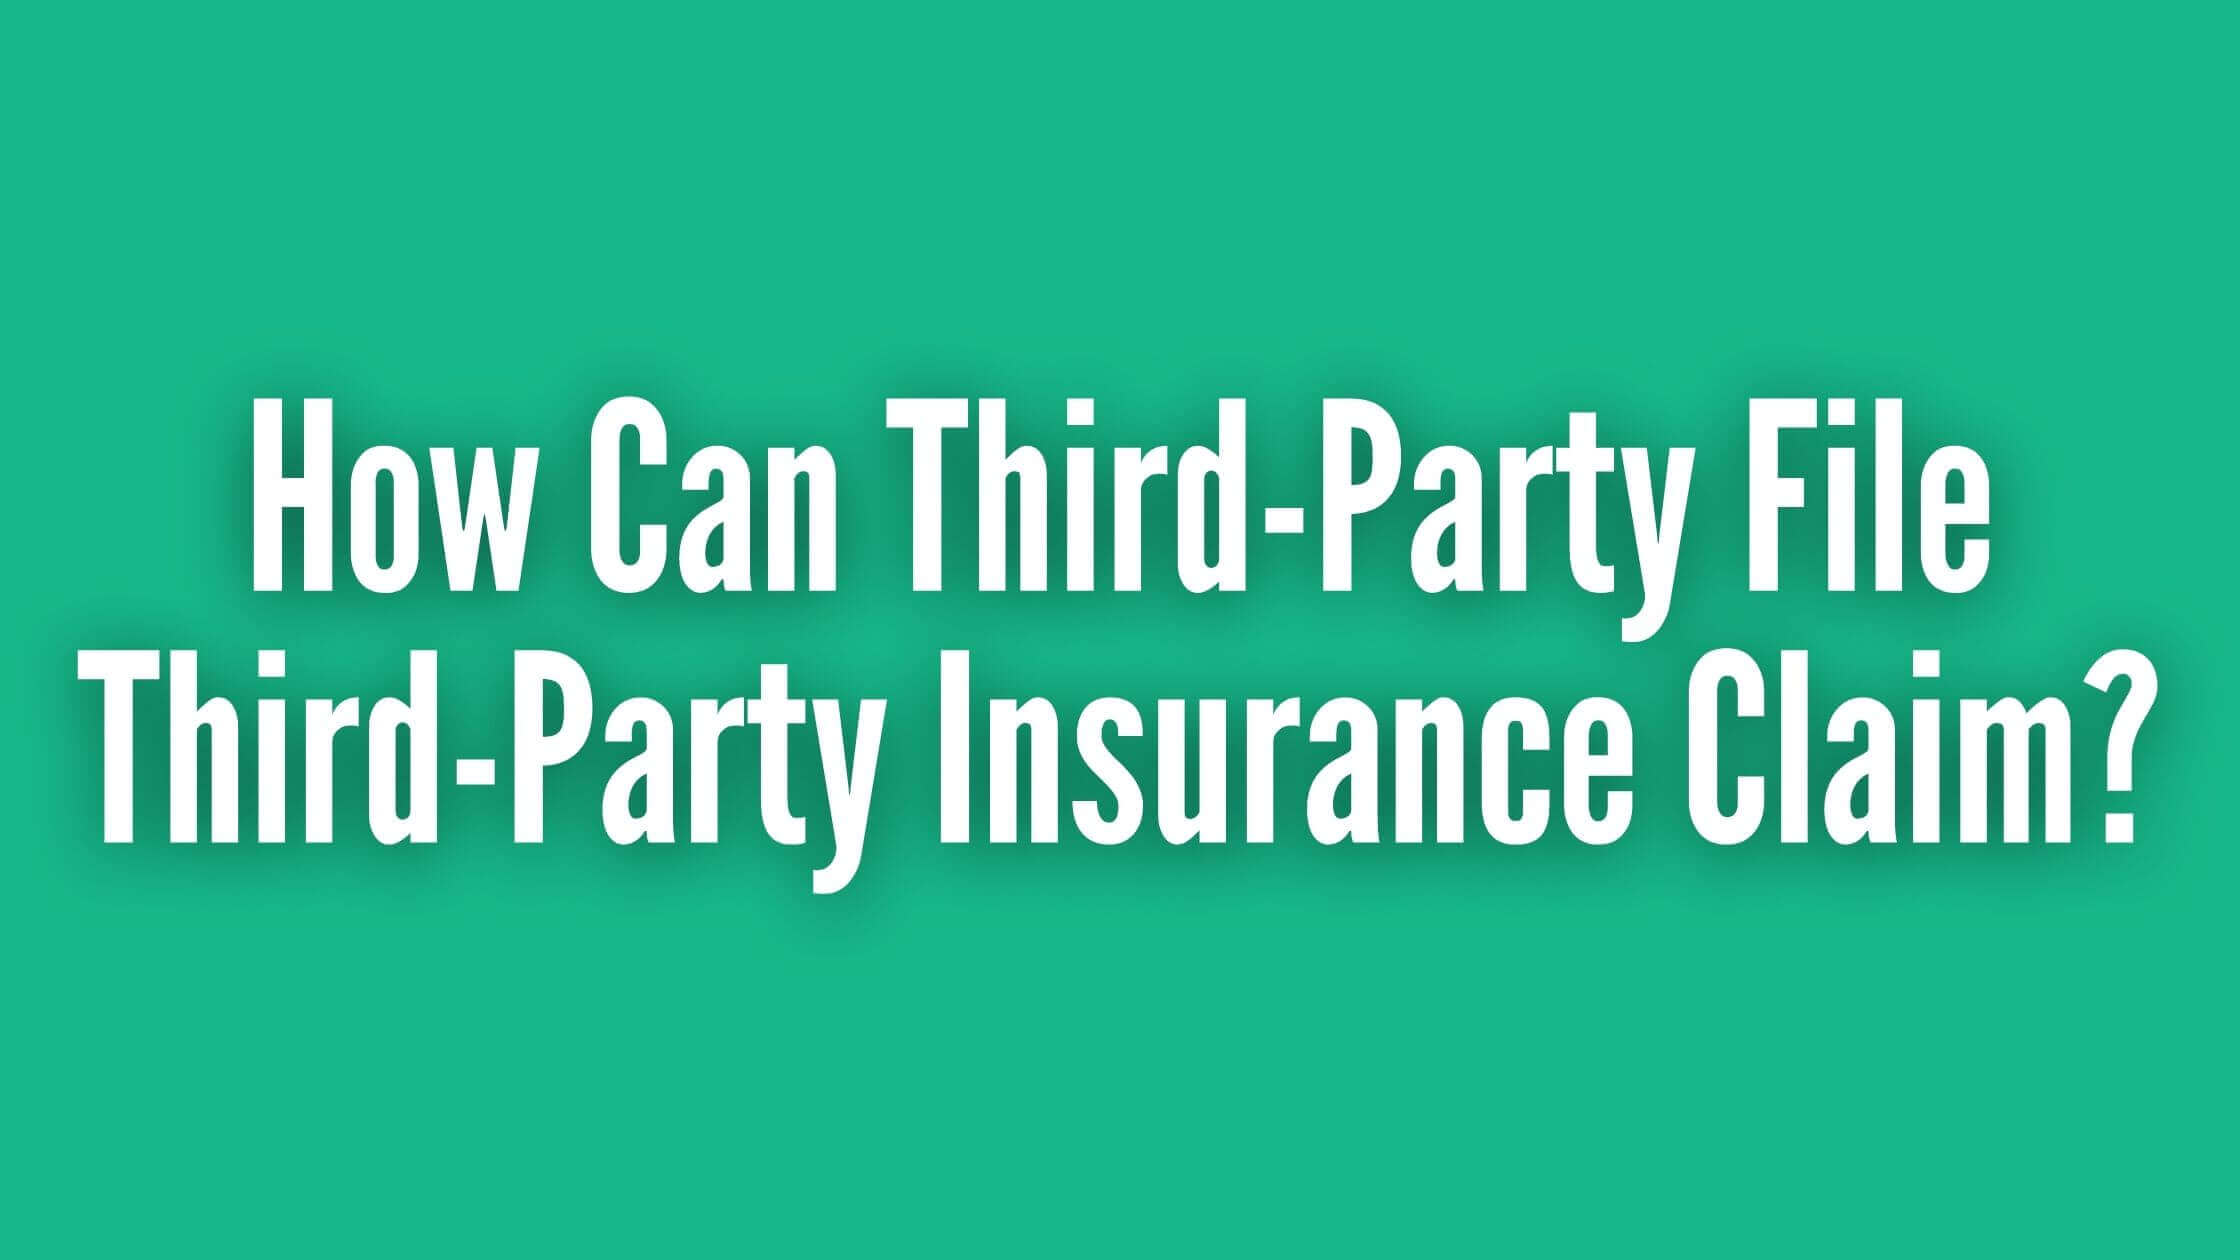 How Can Third-Party File Third-Party Insurance Claim?